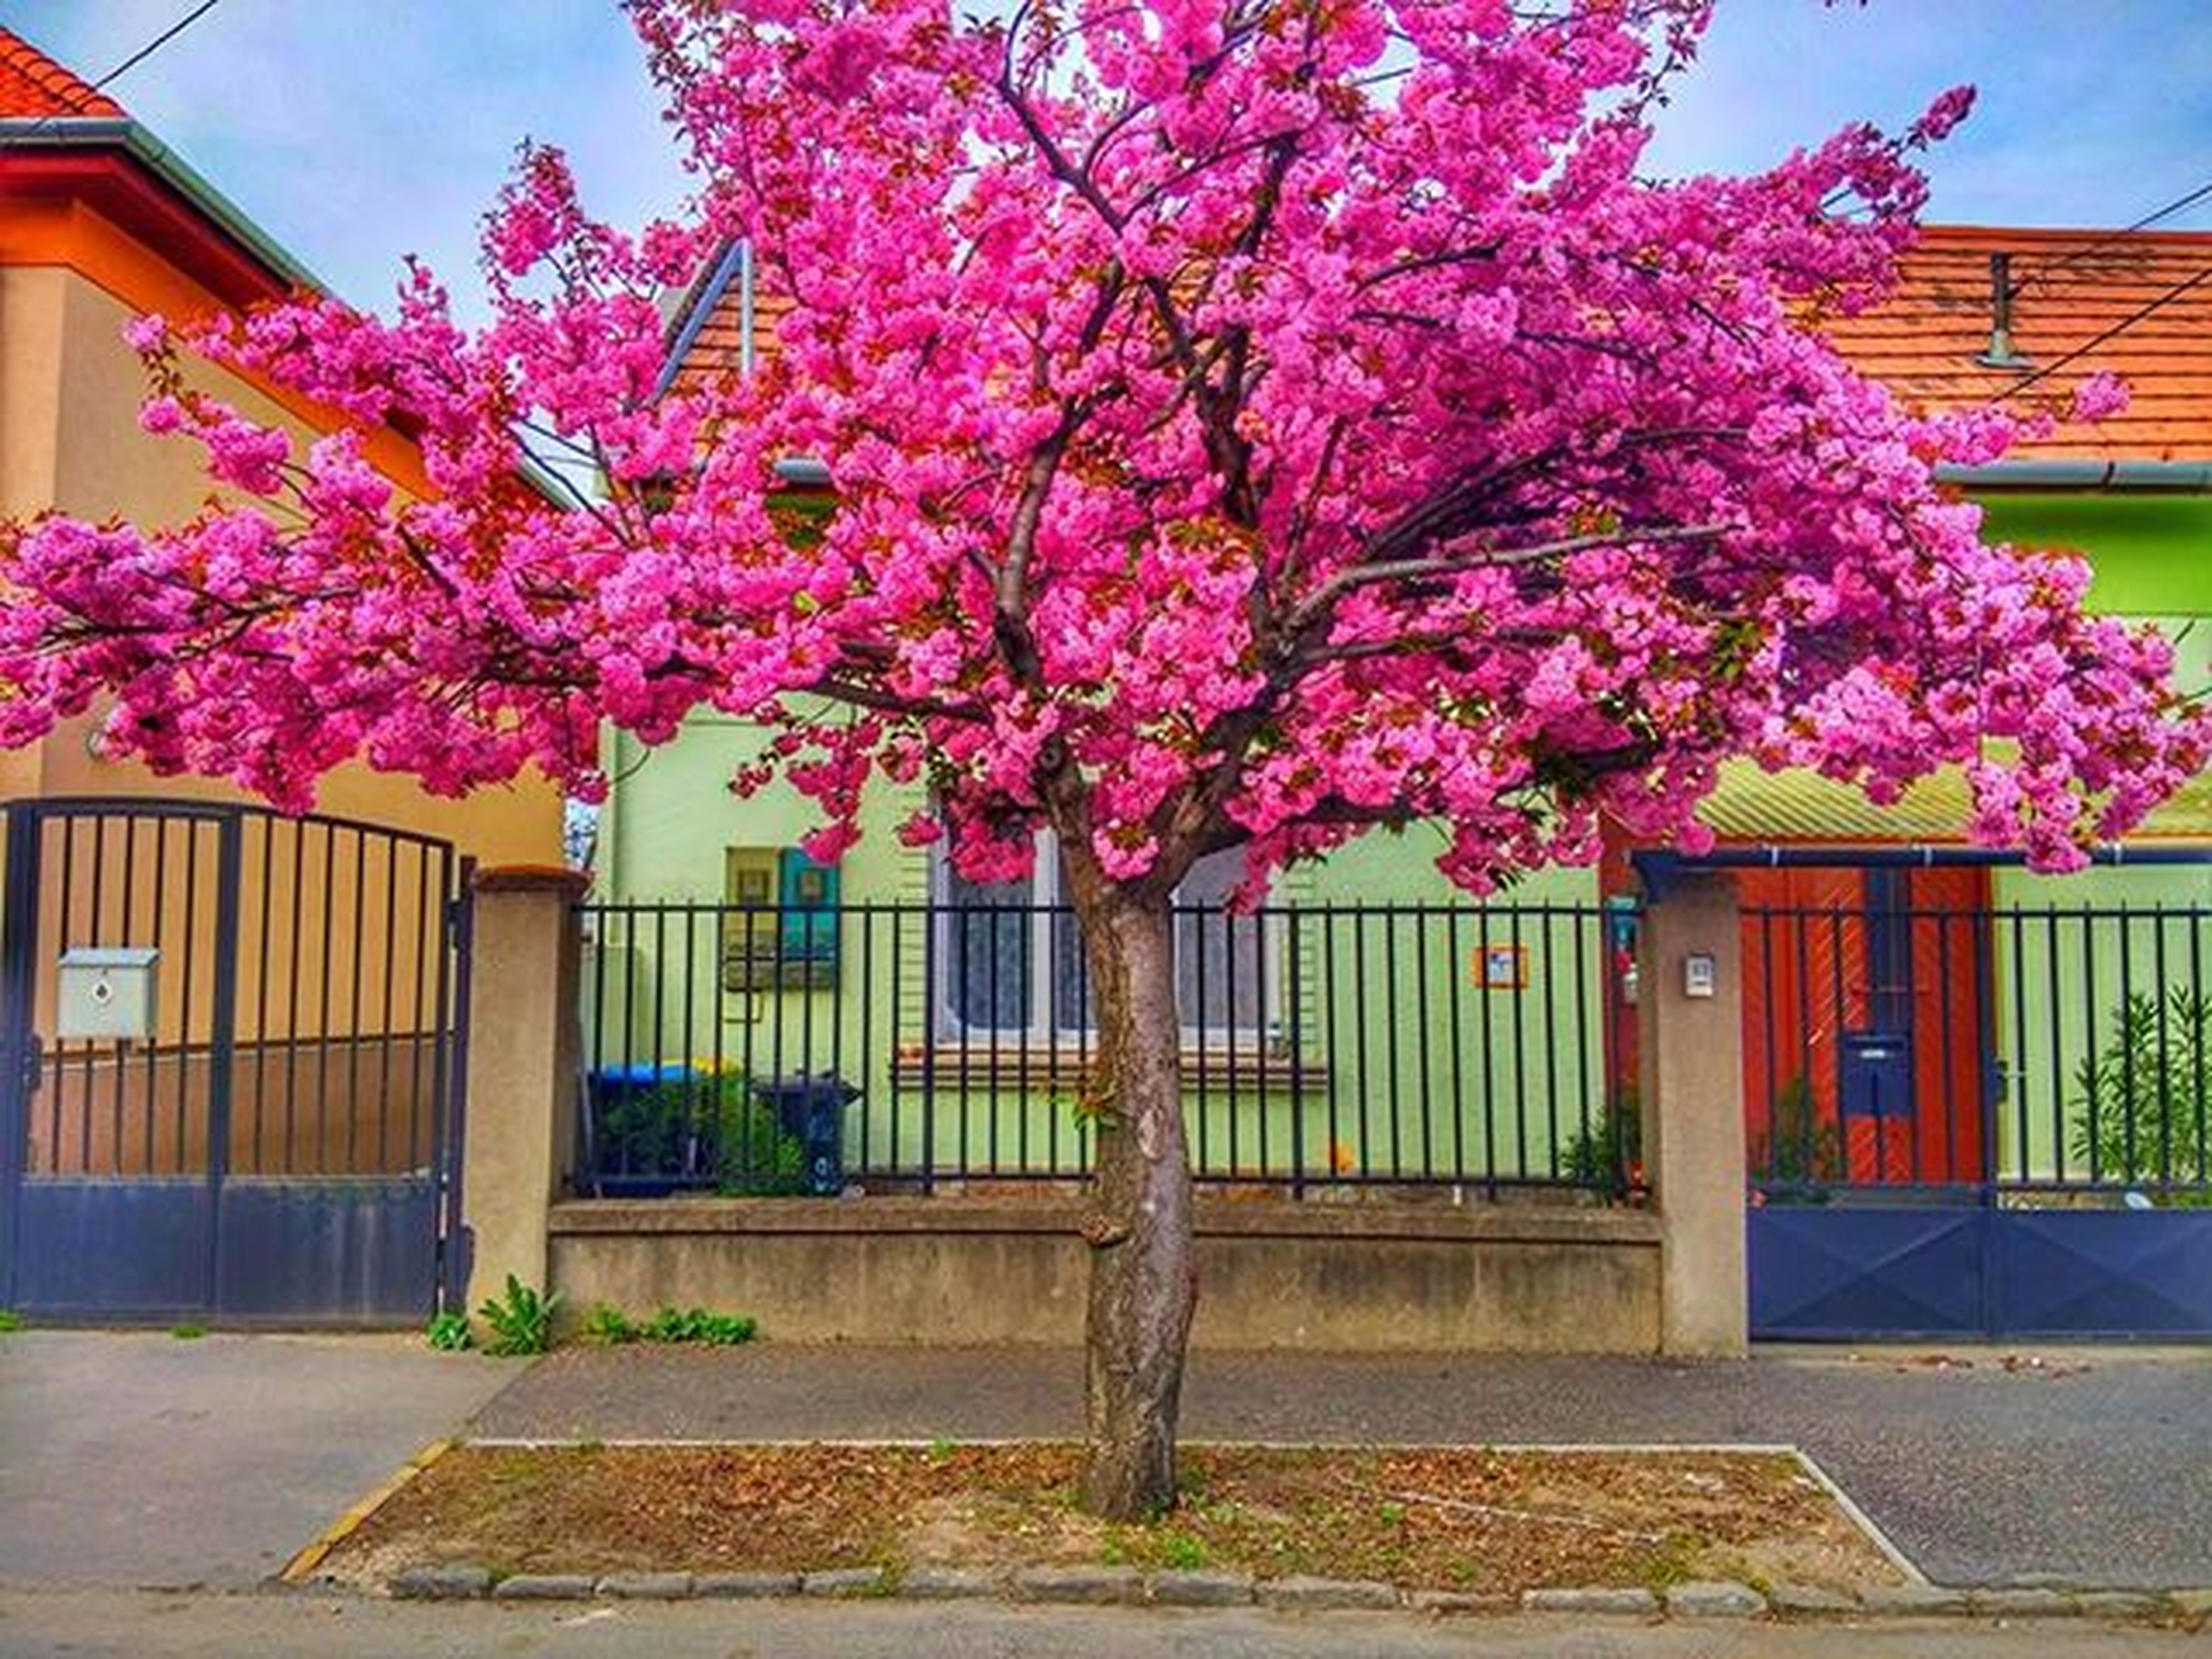 building exterior, flower, built structure, architecture, pink color, tree, growth, window, house, freshness, fragility, building, blossom, sunlight, day, outdoors, residential structure, city, nature, branch